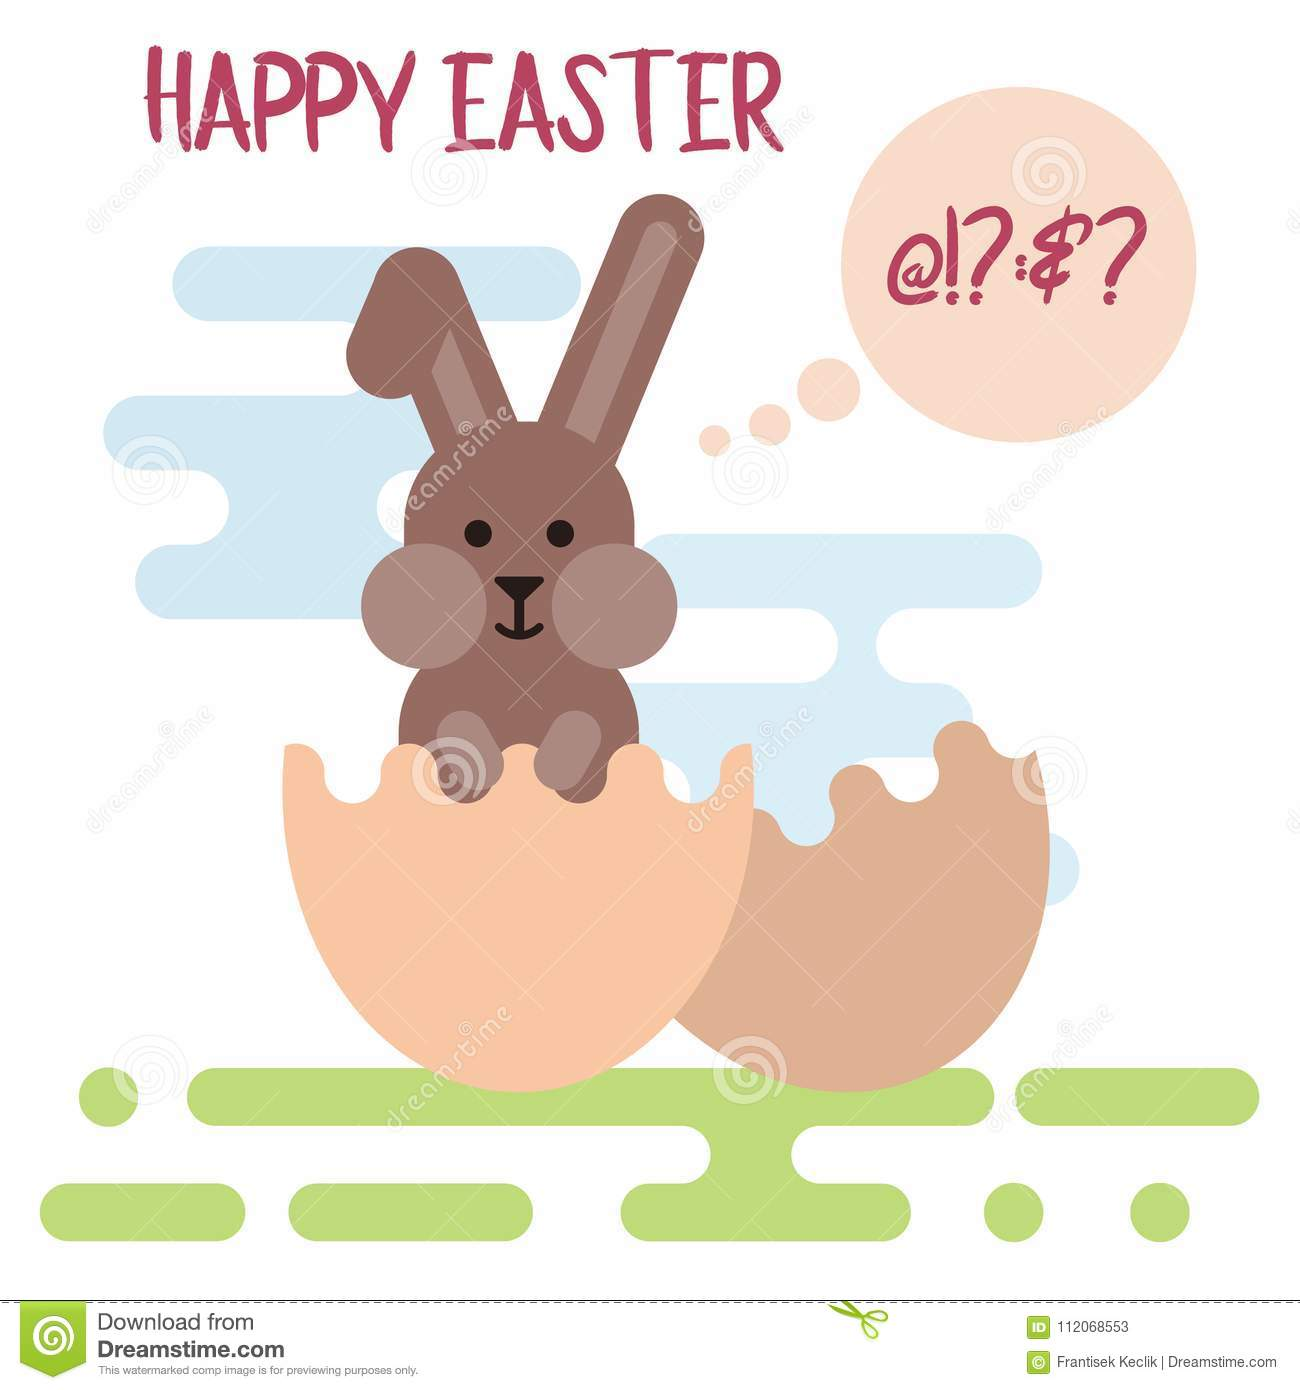 Flat Illustration Of Confused Easter Bunny In The Cracked Egg Shell ...